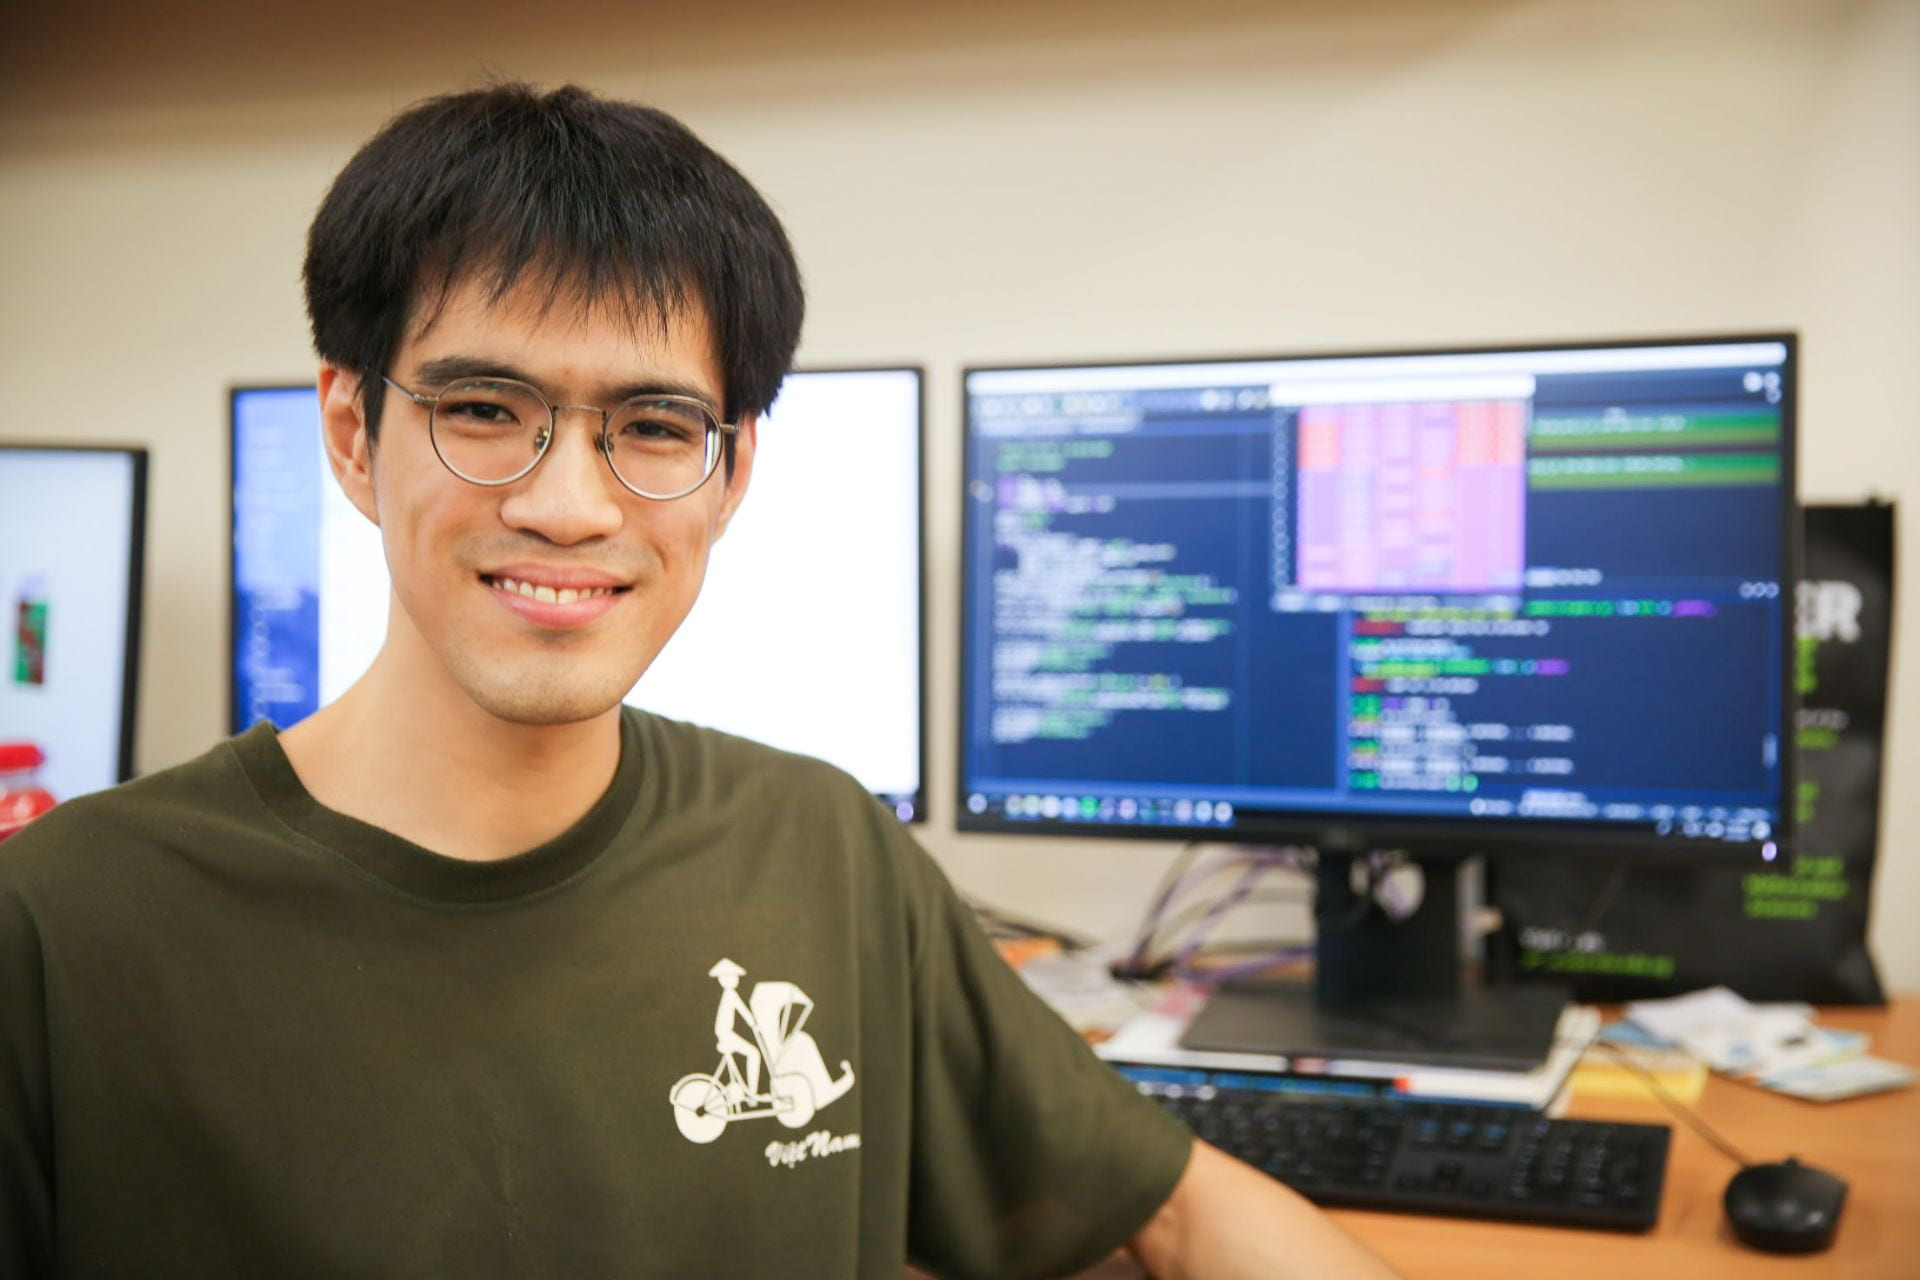 Jonathan Ng – Budding Data Scientist in Biotechnology